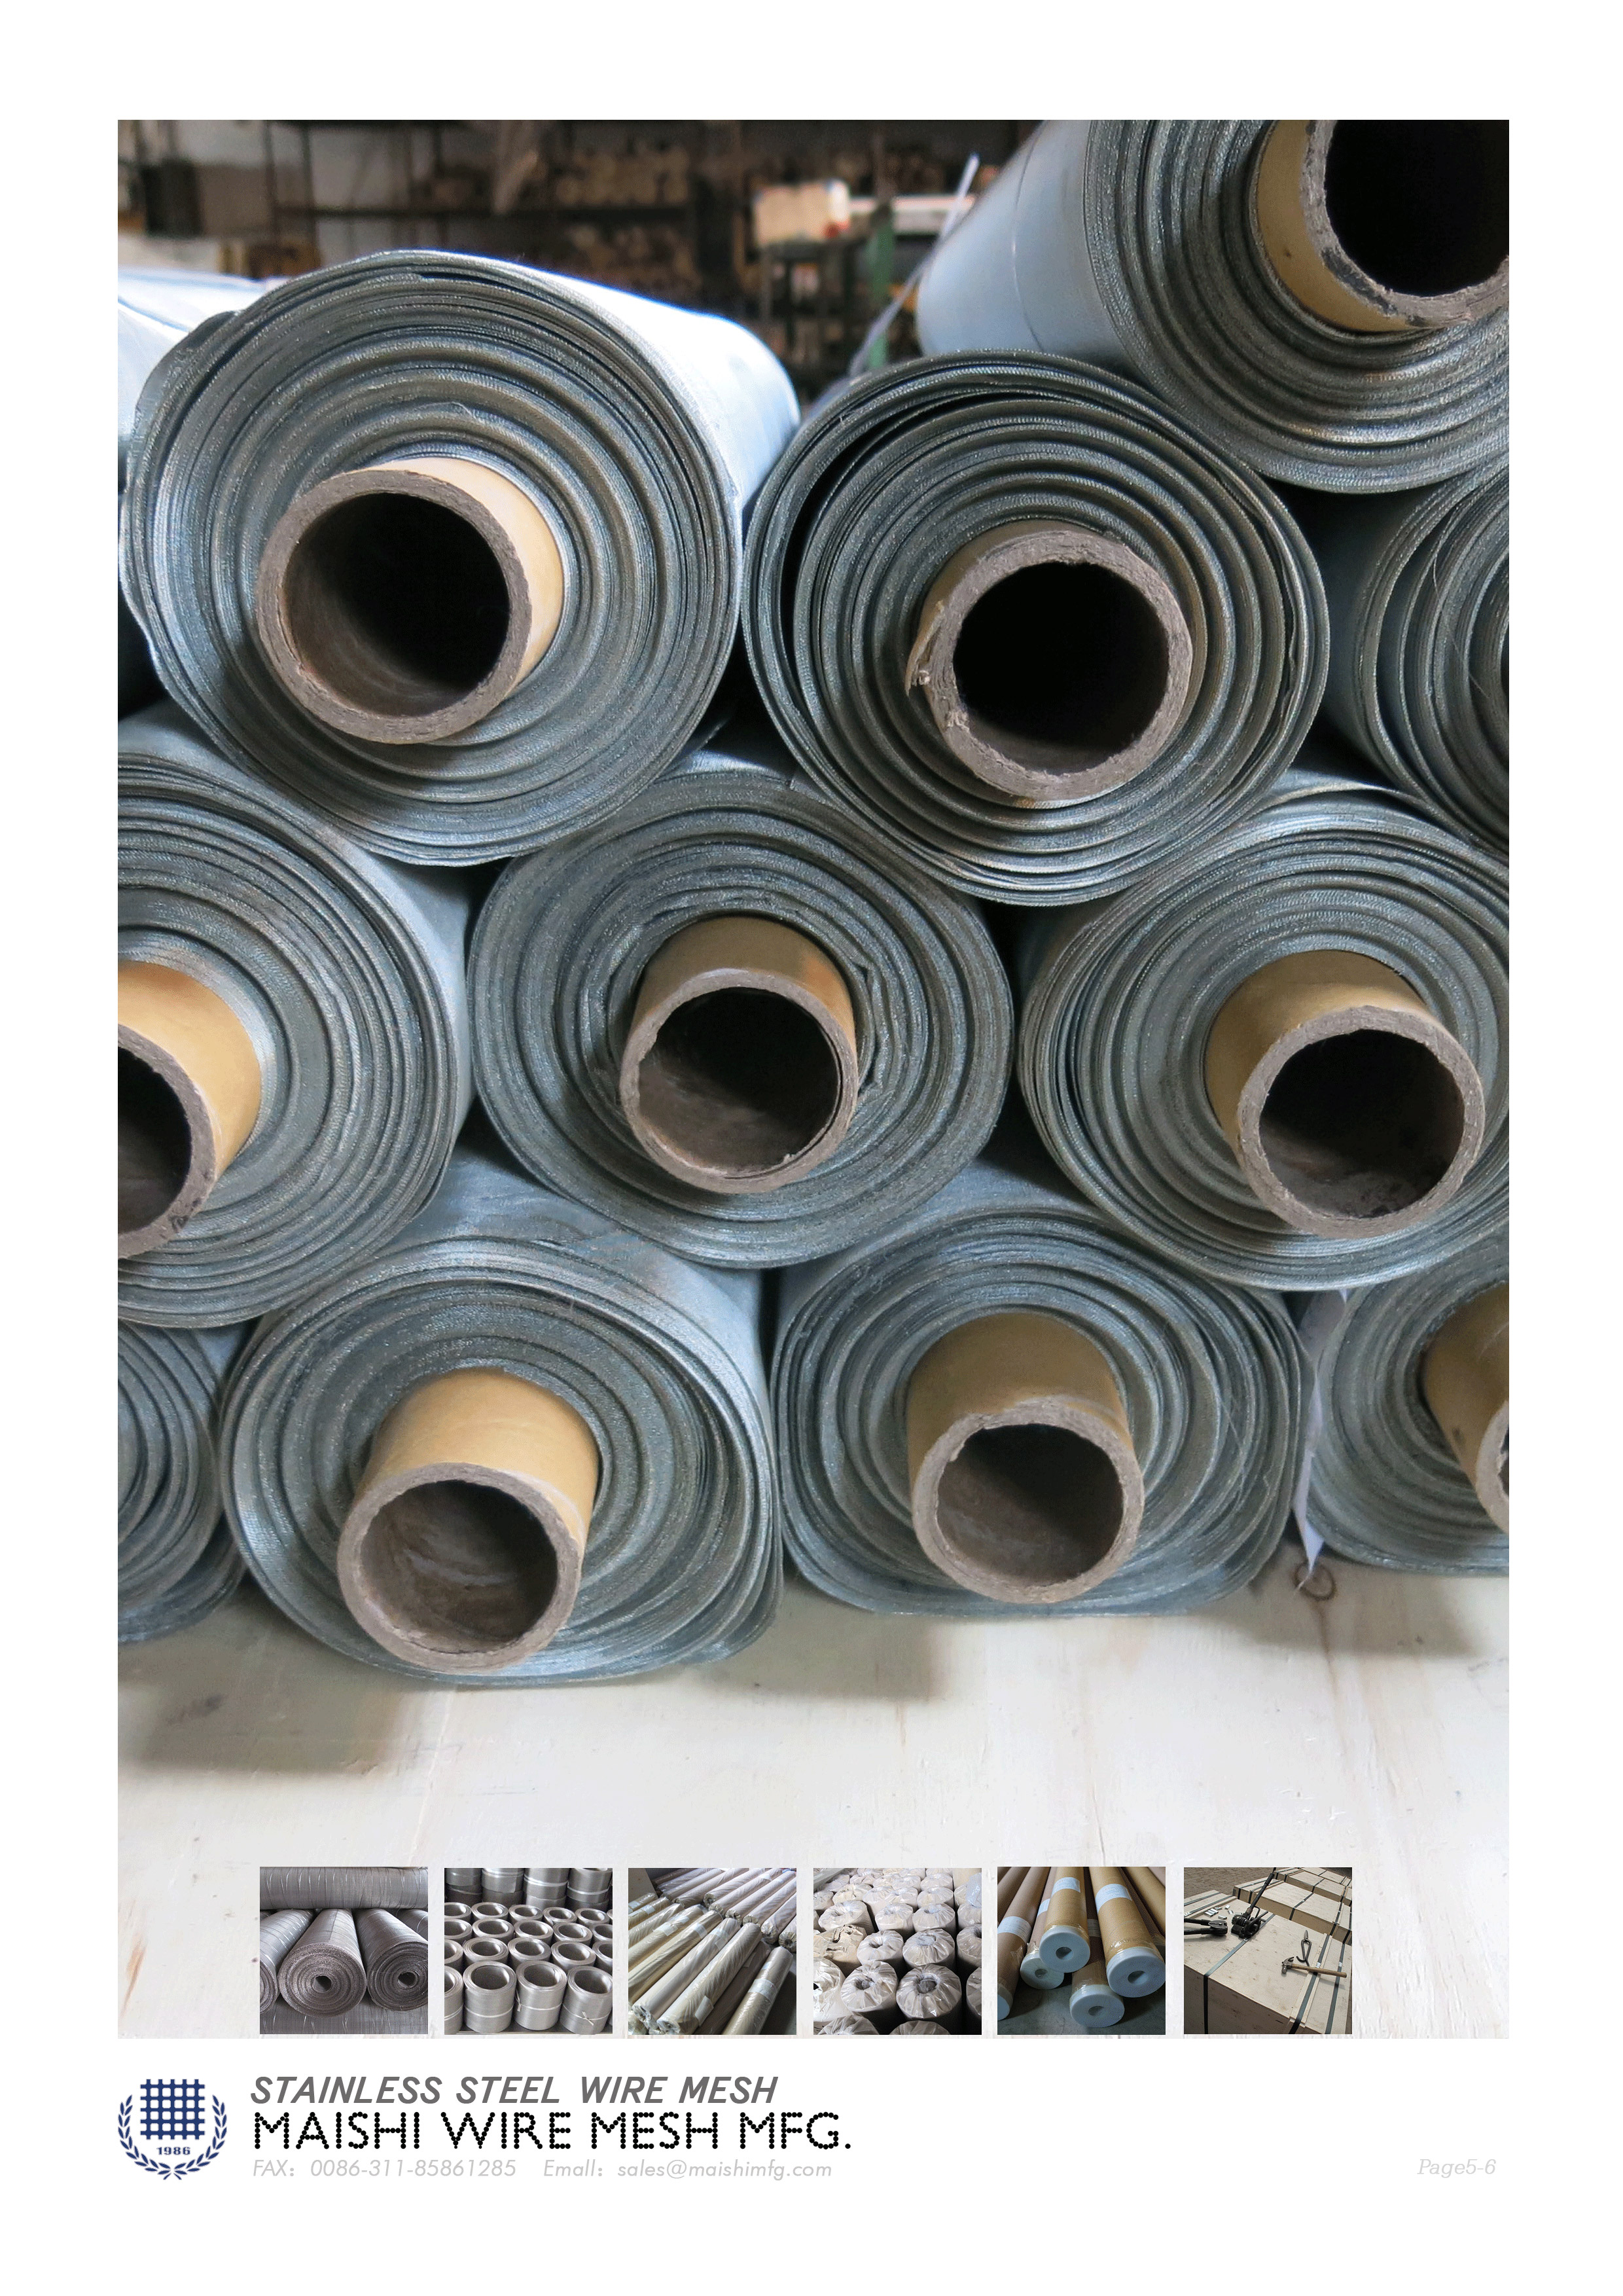 Stainless Steel Wire Mesh | Stainless Steel Woven Wire Cloth ...